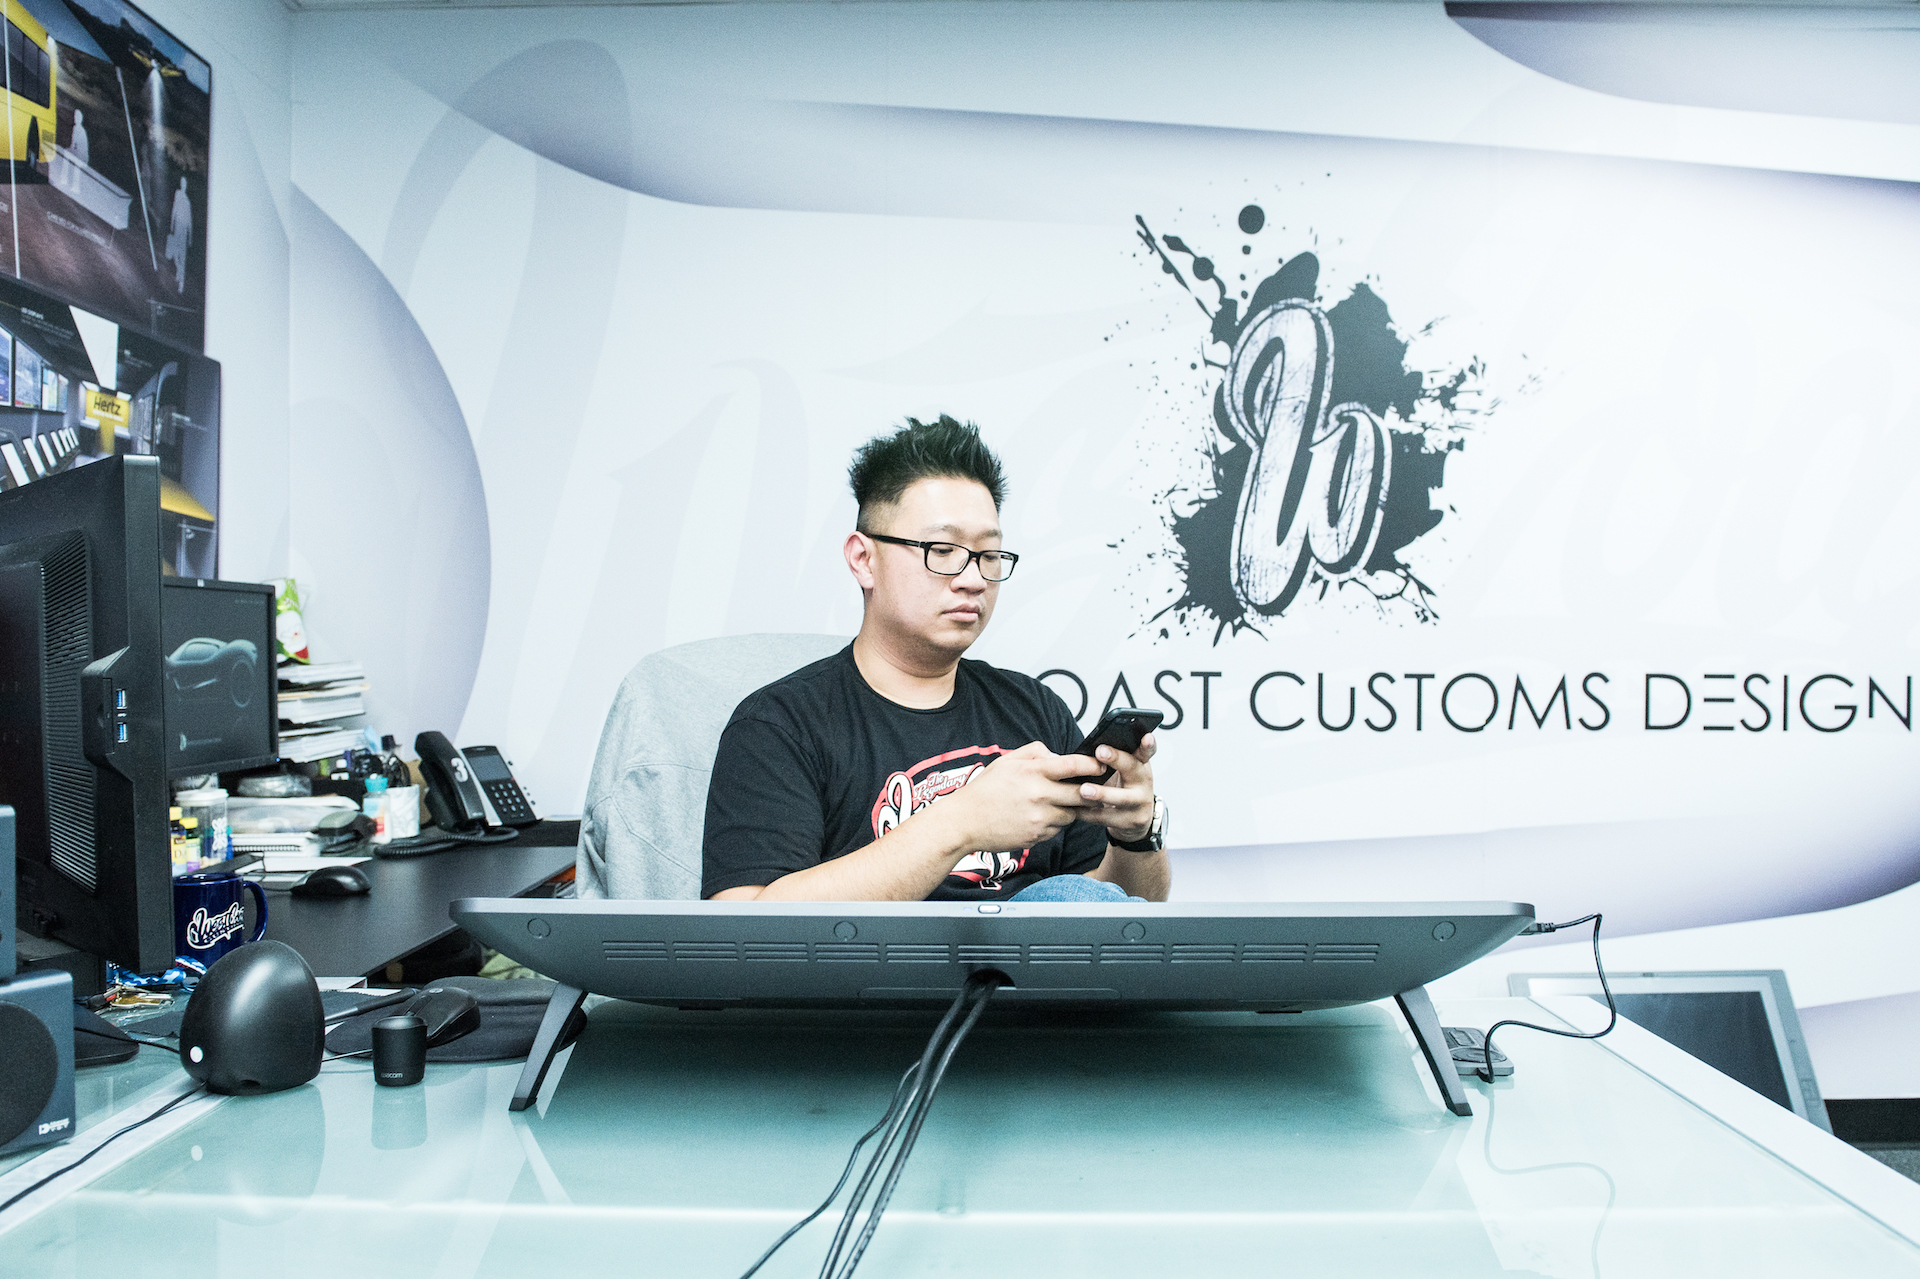 Musa in his office at West Coast Customs.